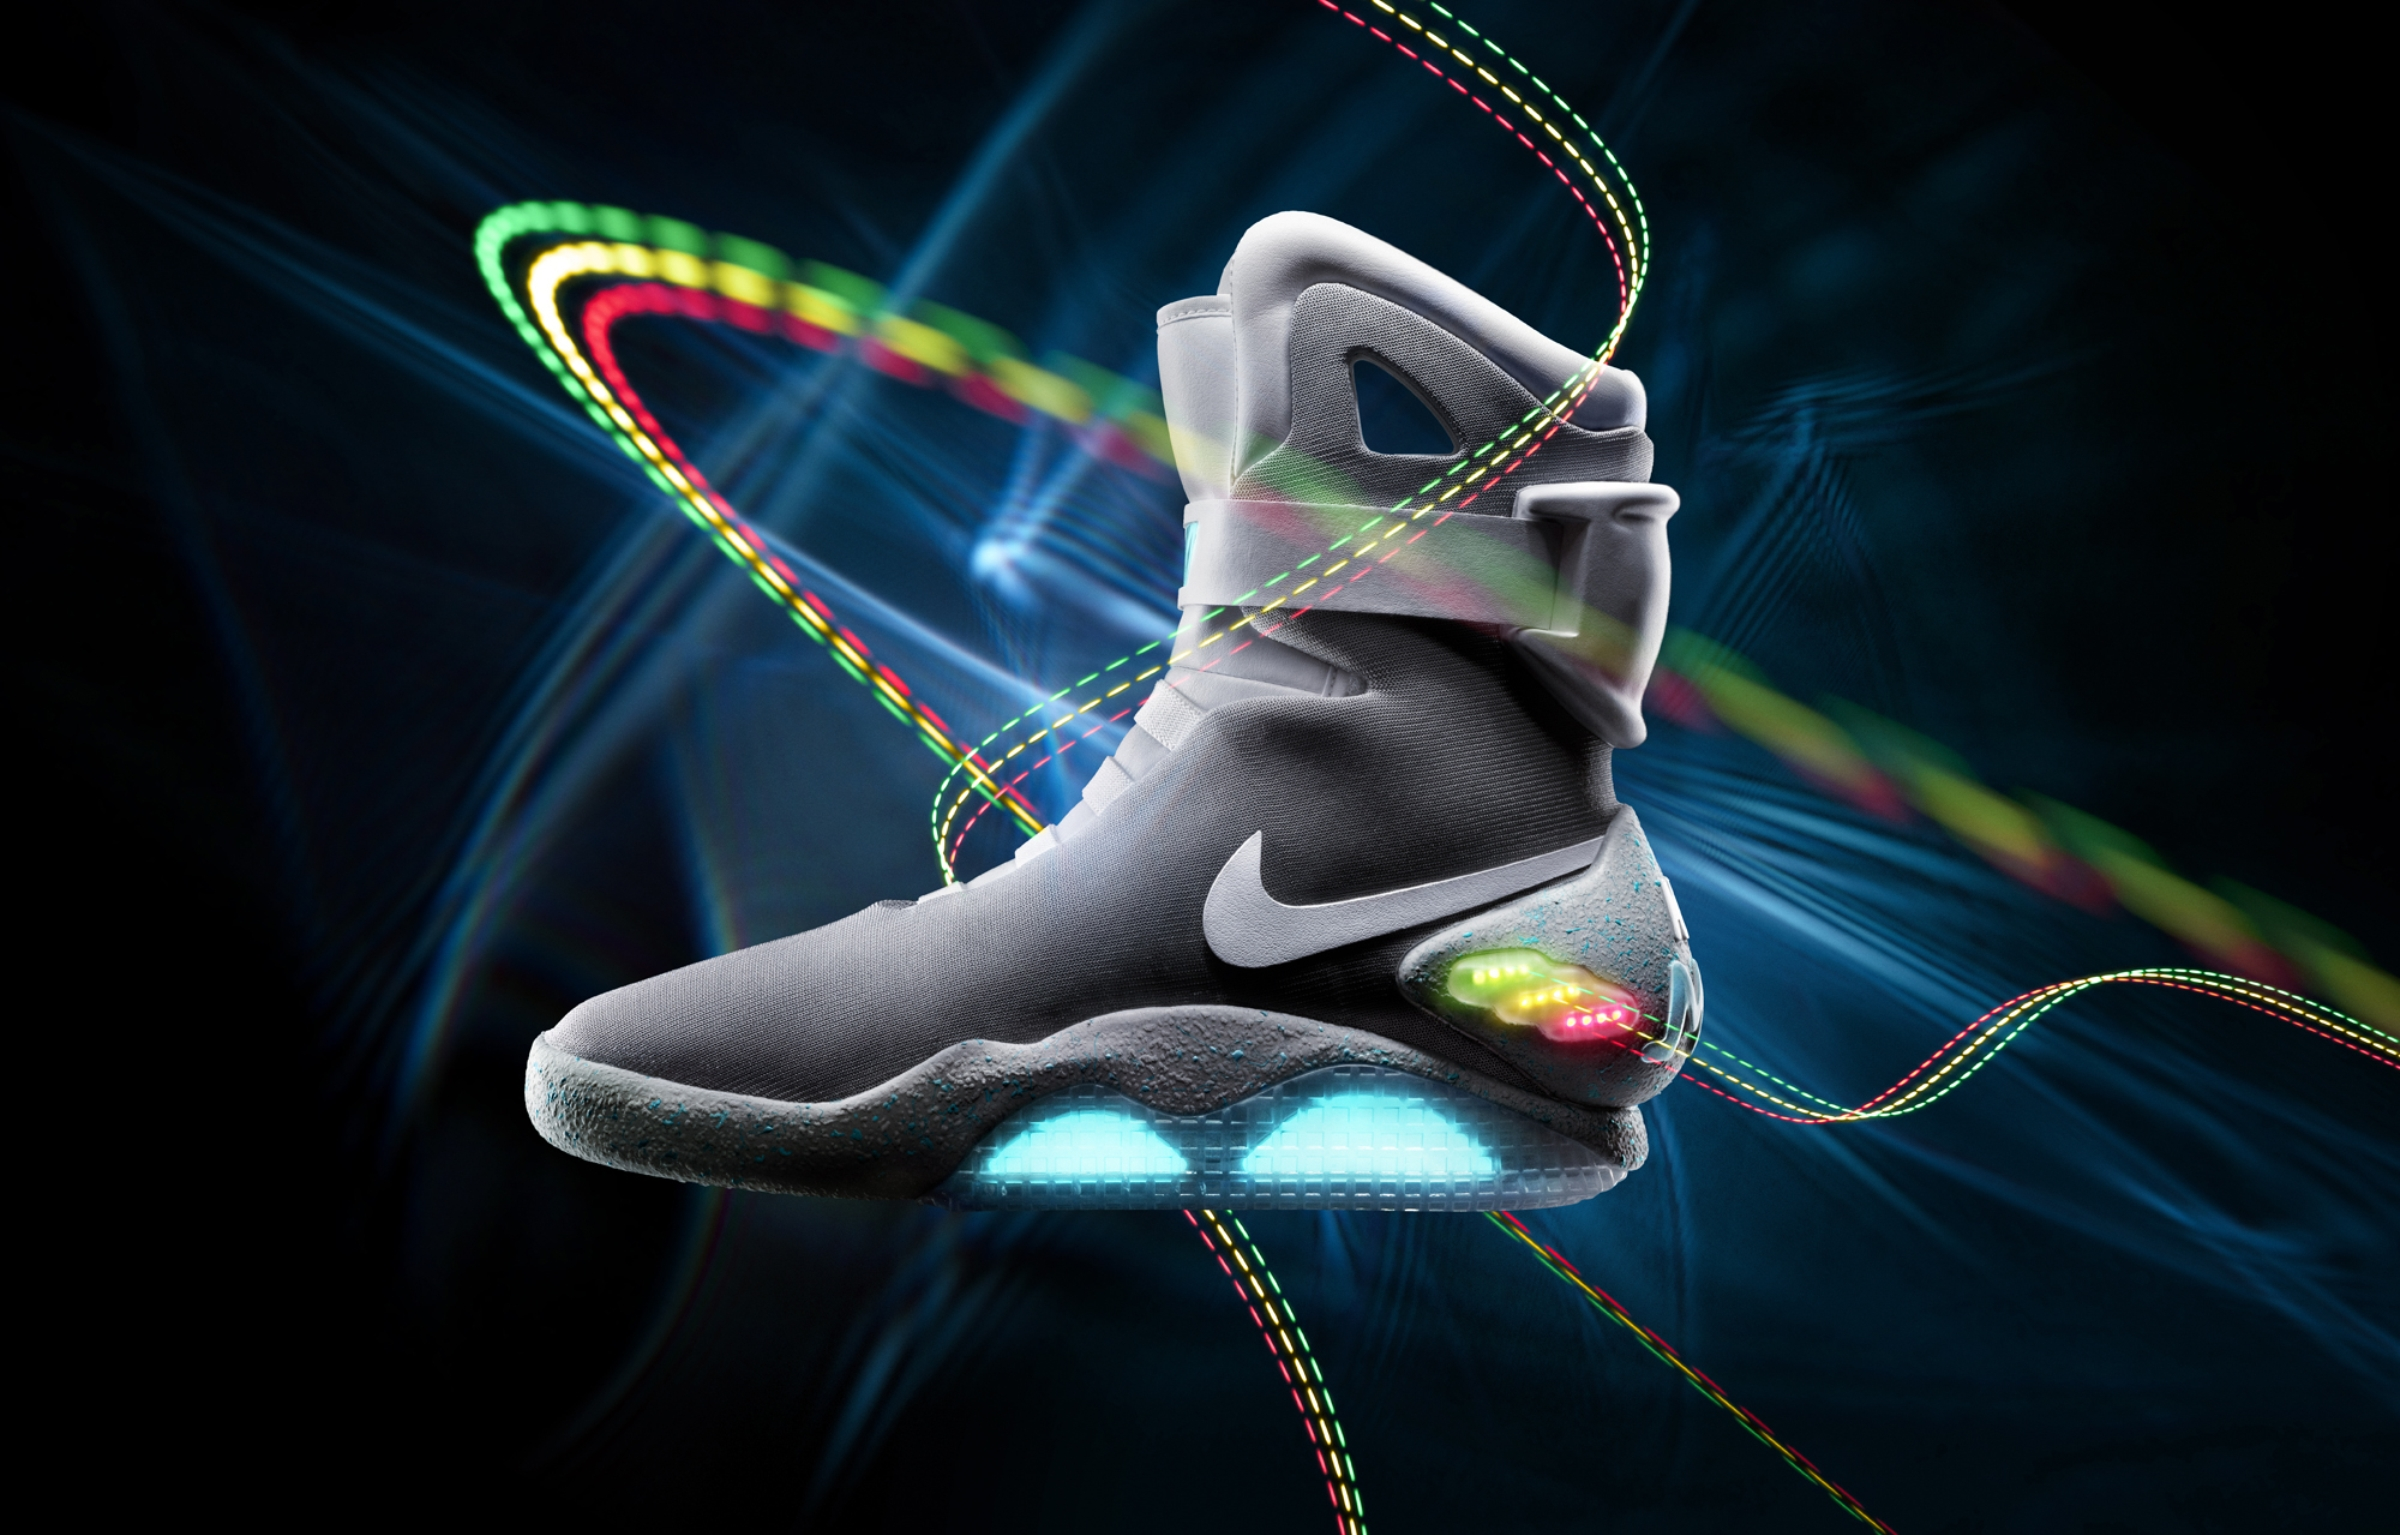 Nike is actually making the MAG shoes from Back To The Future II